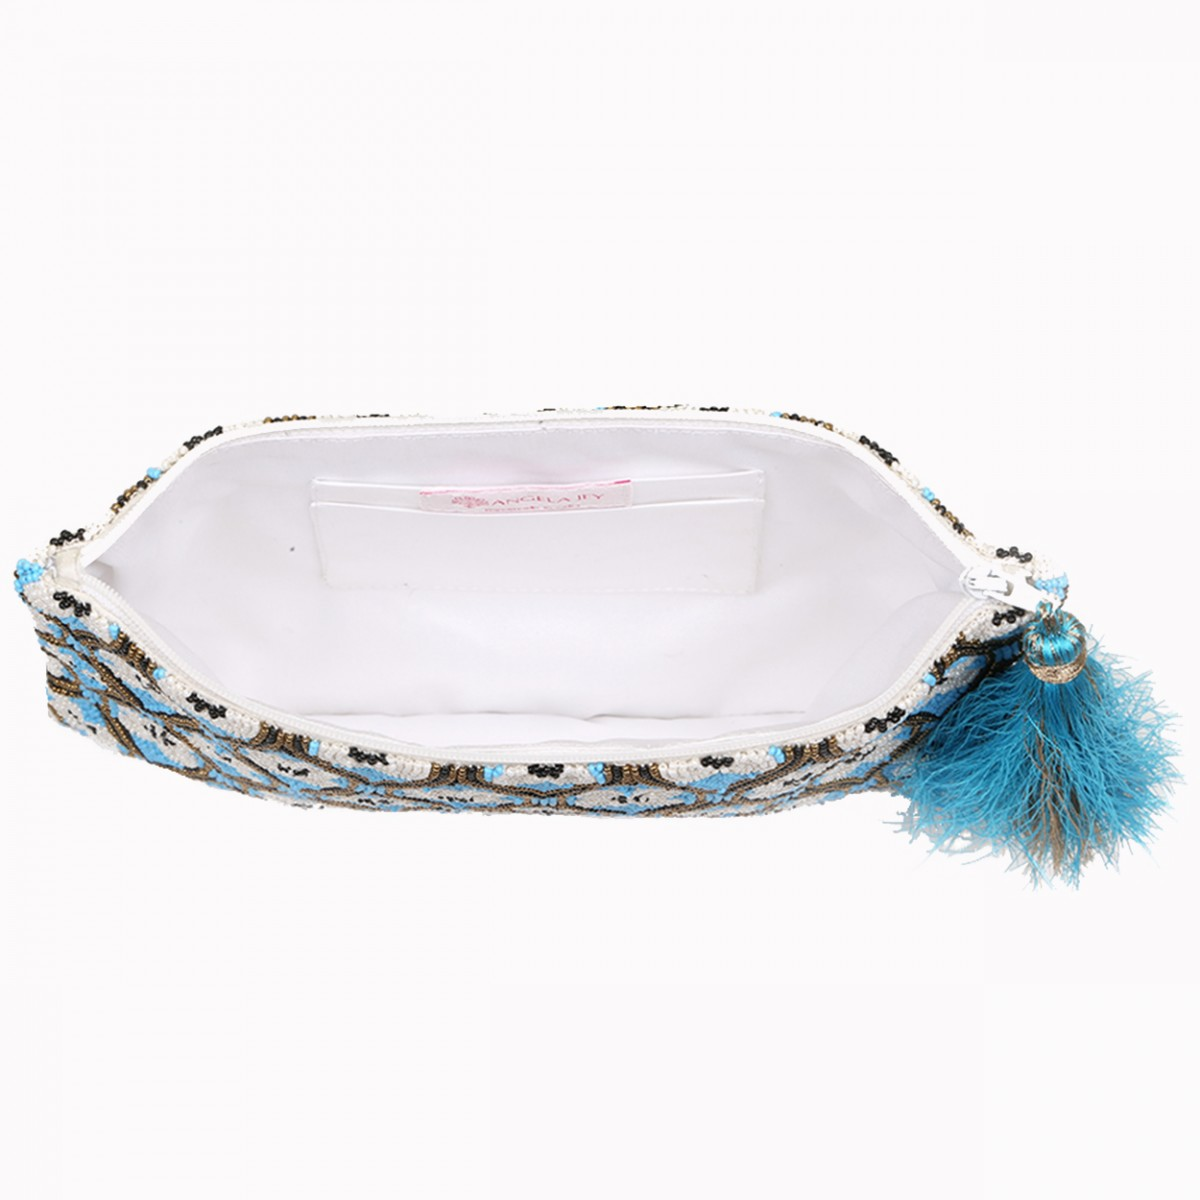 Beaded Pouch Evening Clutch Bag - Turquoise